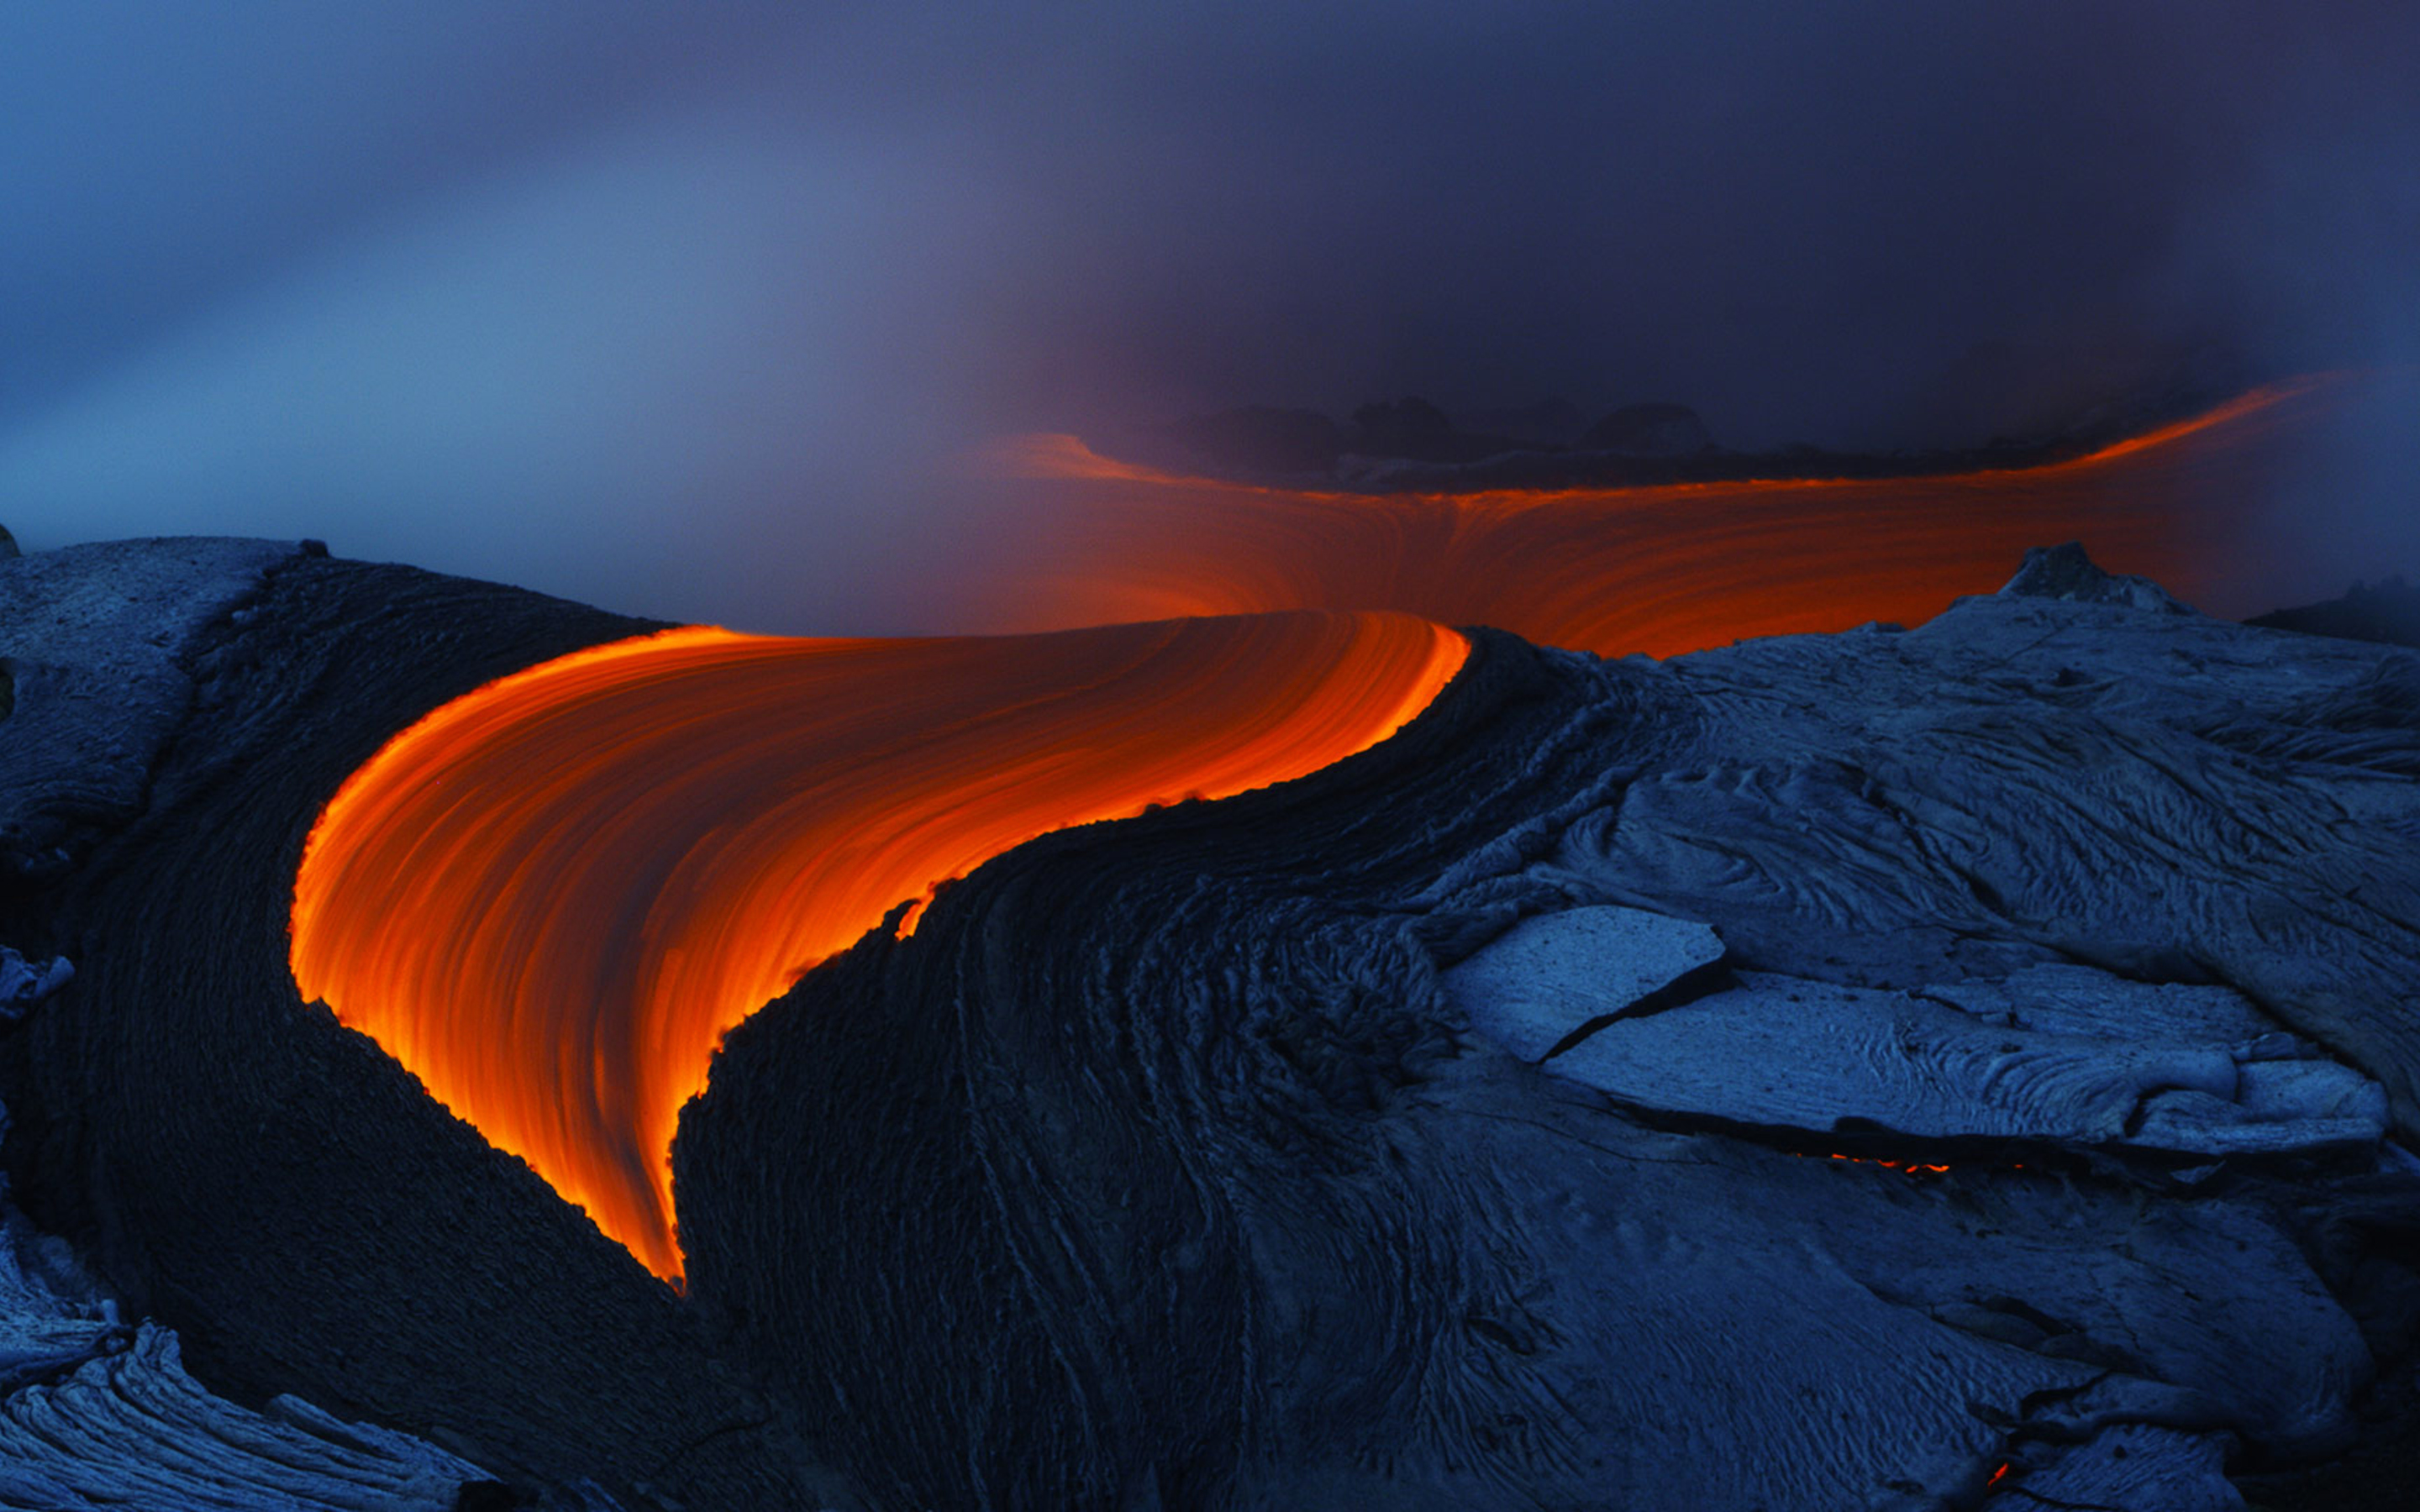 2880x1800 volcano macbook pro retina hd 4k wallpapers images backgrounds photos and pictures - Background images 4k hd ...